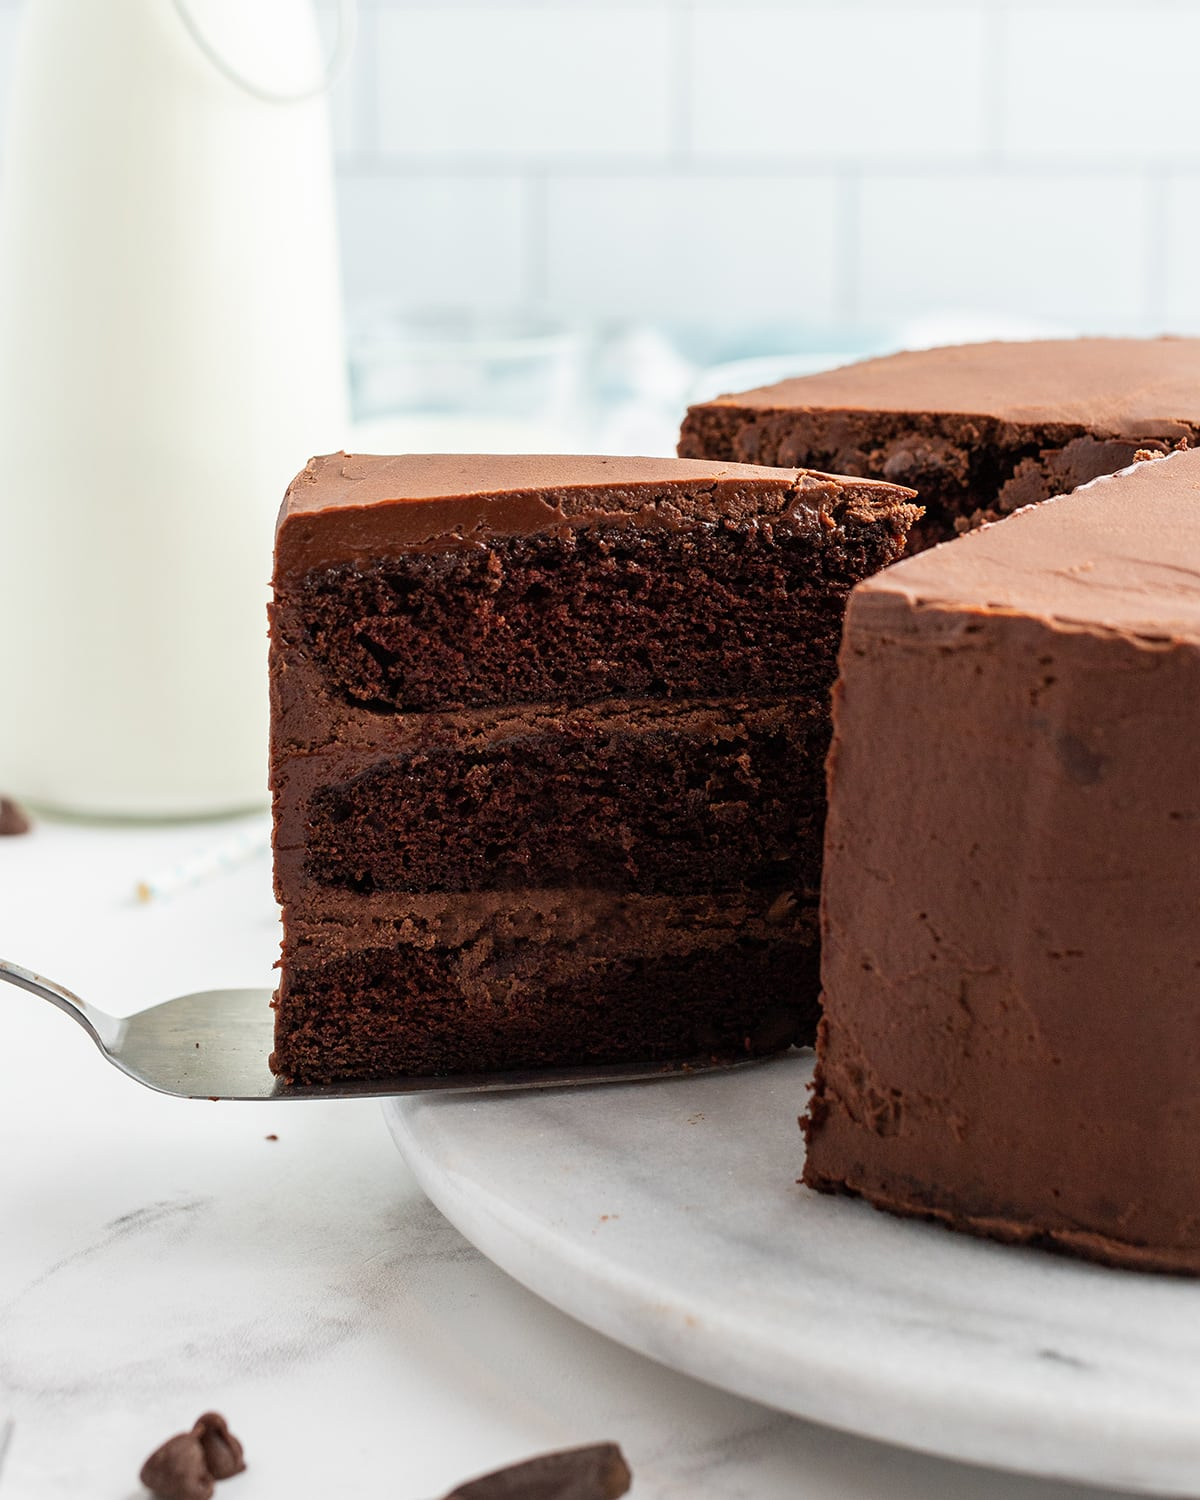 A chocolate cake slice being pulled out of a cake on a cake server.